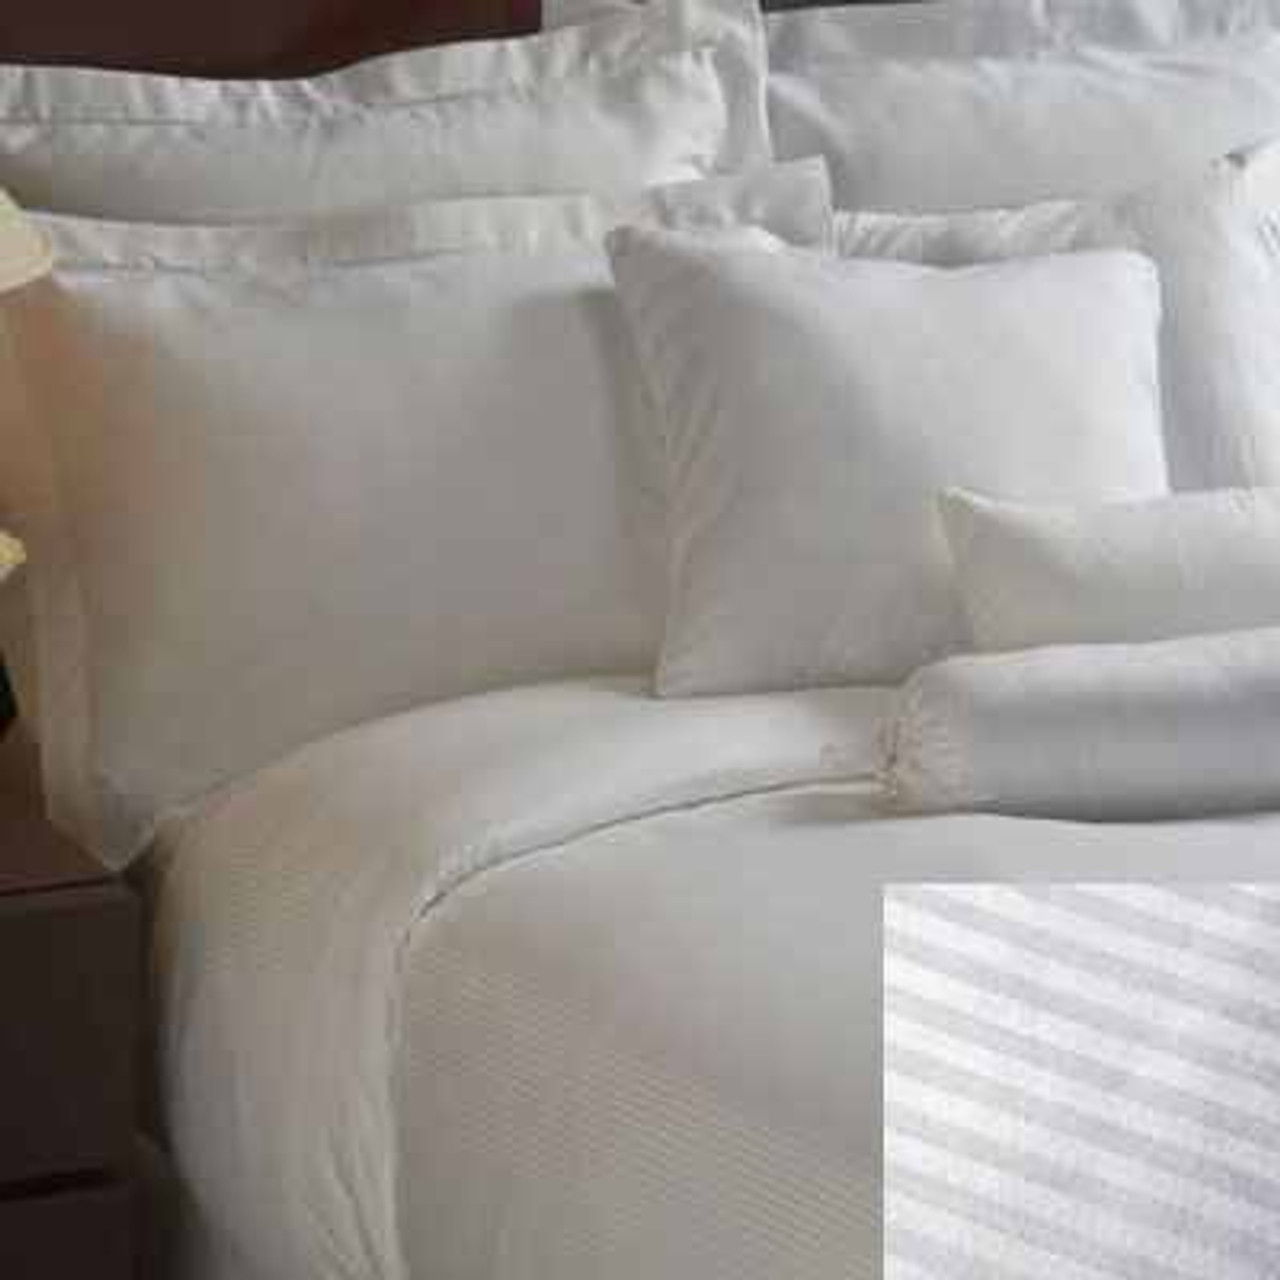 1888 Mills 1888 Mills or Magnificence or Pillow Shams or Tone-on-Tone White Or Linen or Pack of 24